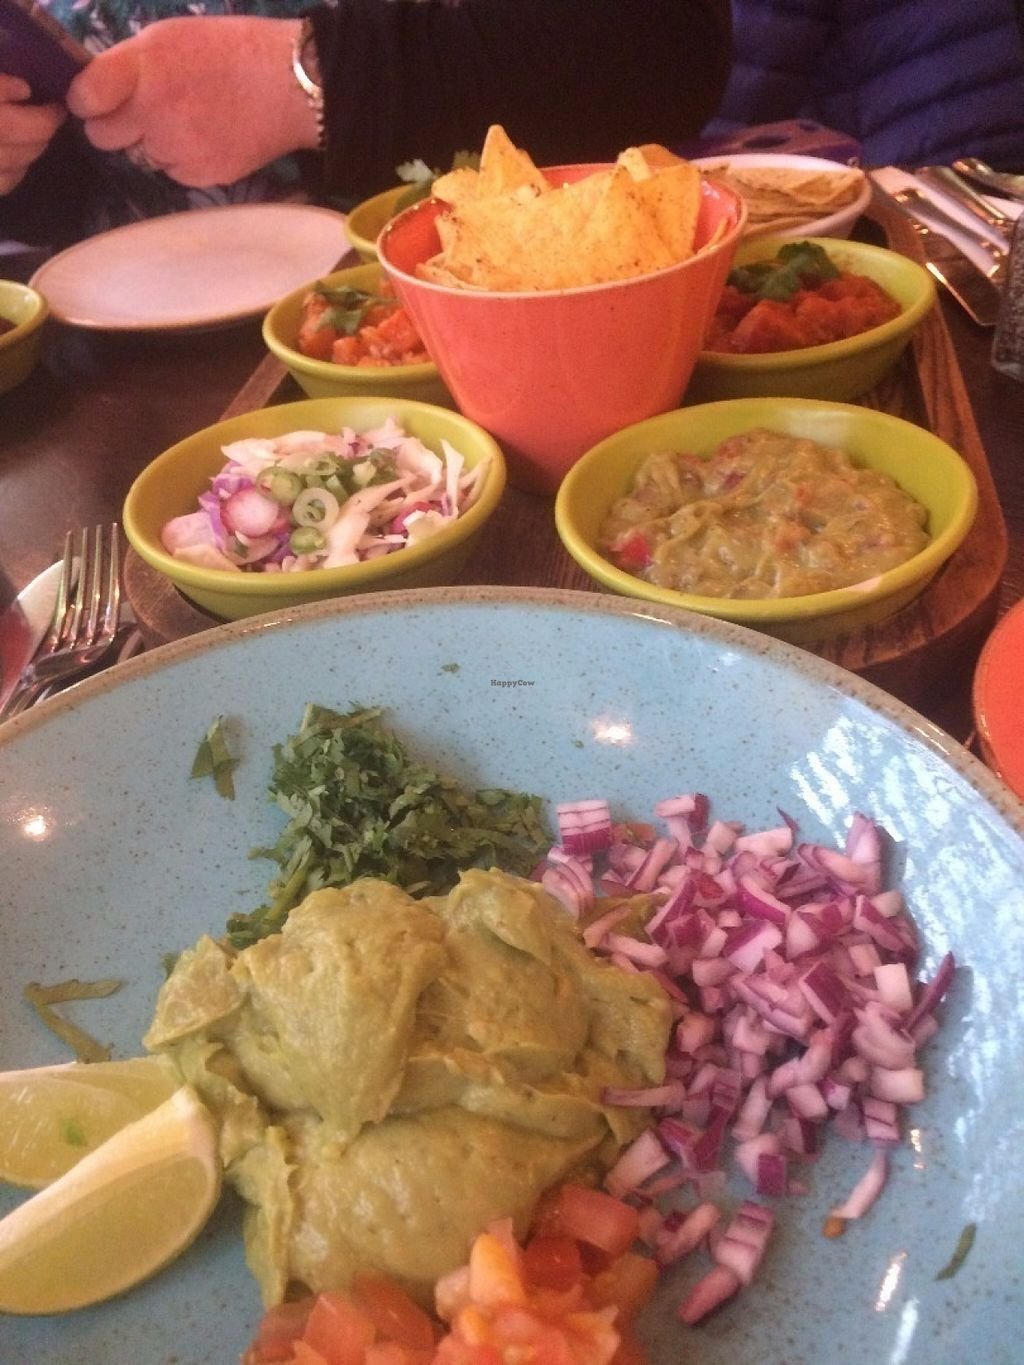 """Photo of Las Iguanas - Hurst St  by <a href=""""/members/profile/alia_801"""">alia_801</a> <br/>Taco sharing plate, with extra guacamole <br/> July 14, 2016  - <a href='/contact/abuse/image/69839/159816'>Report</a>"""